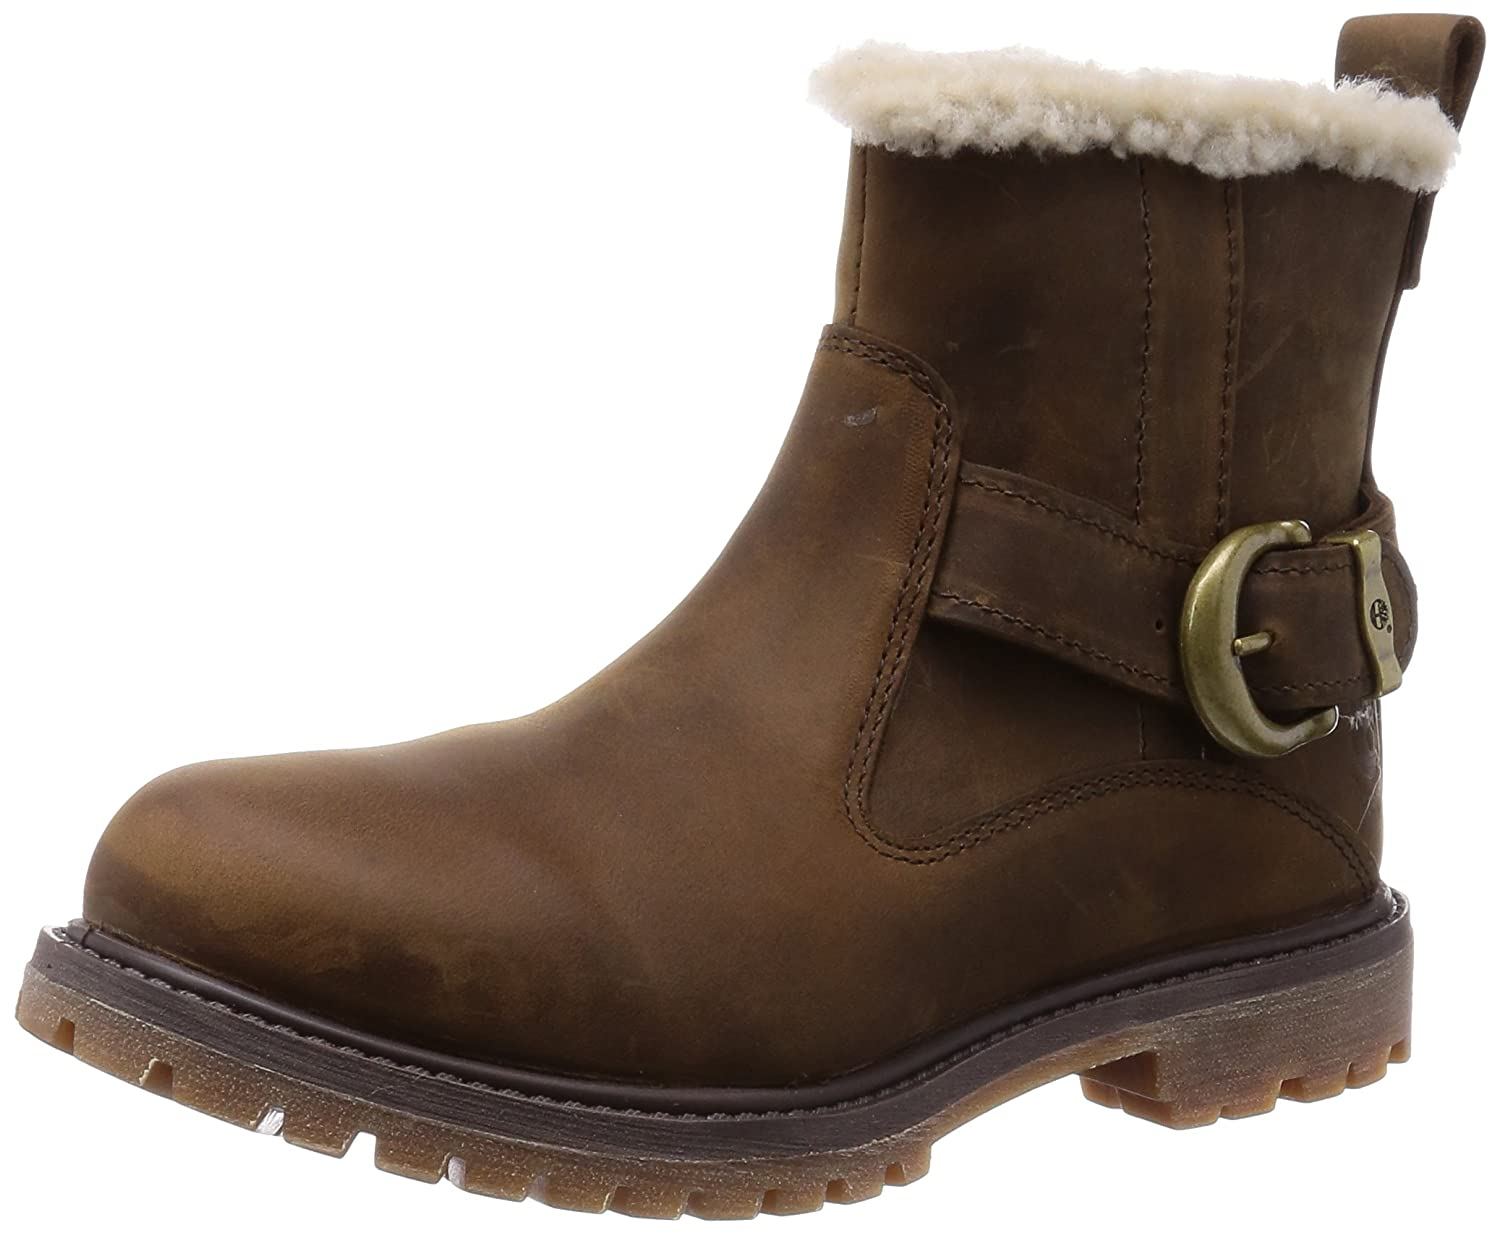 1 in New Timberland Nellie Pull On Boots Size 7 Uk Brown